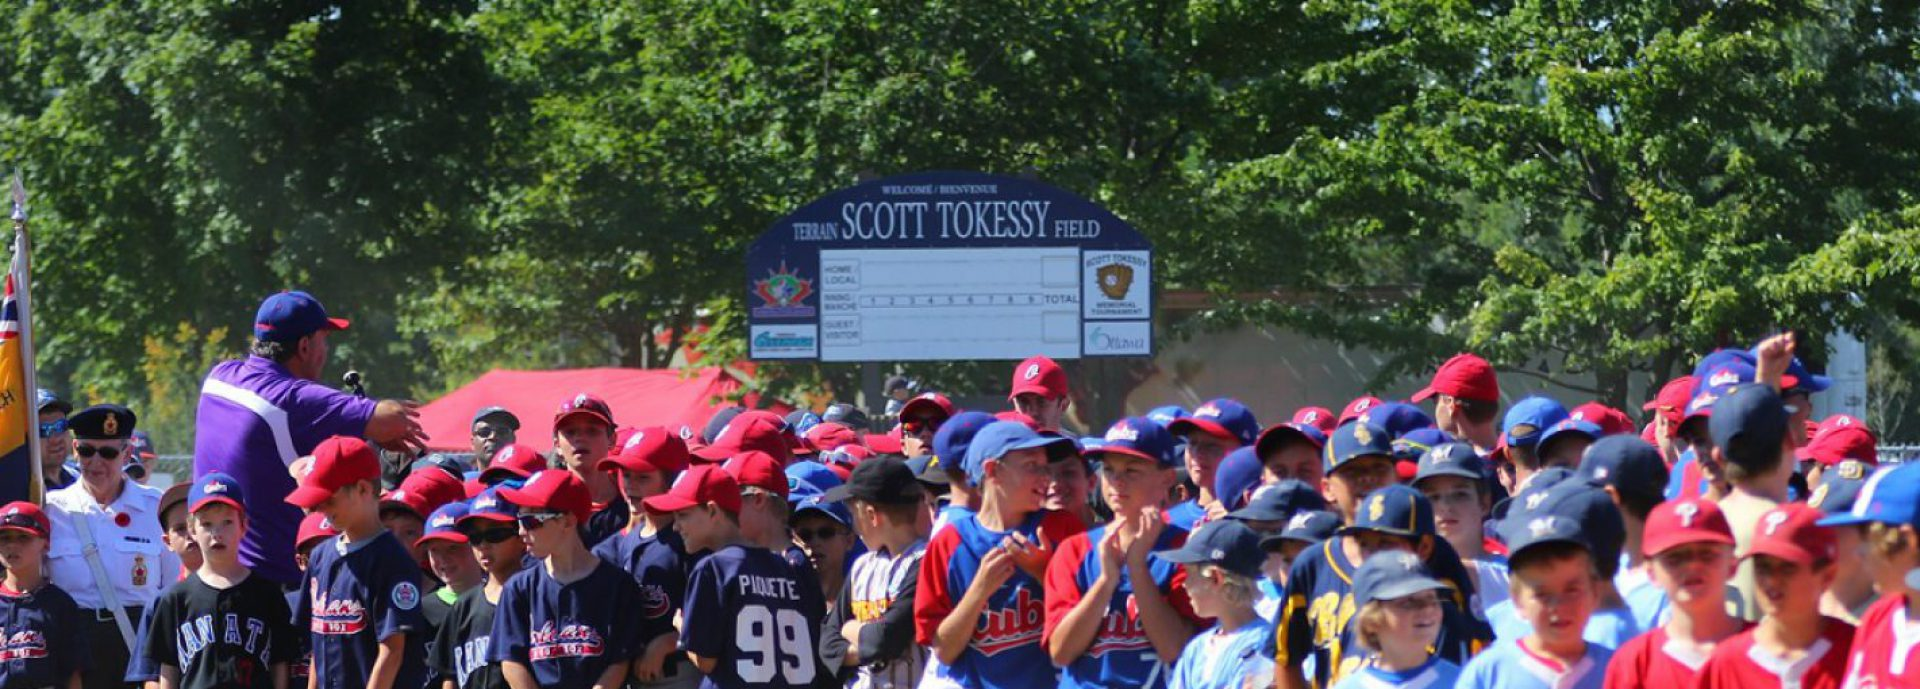 Scott Tokessy Memorial Gold Glove Tournament